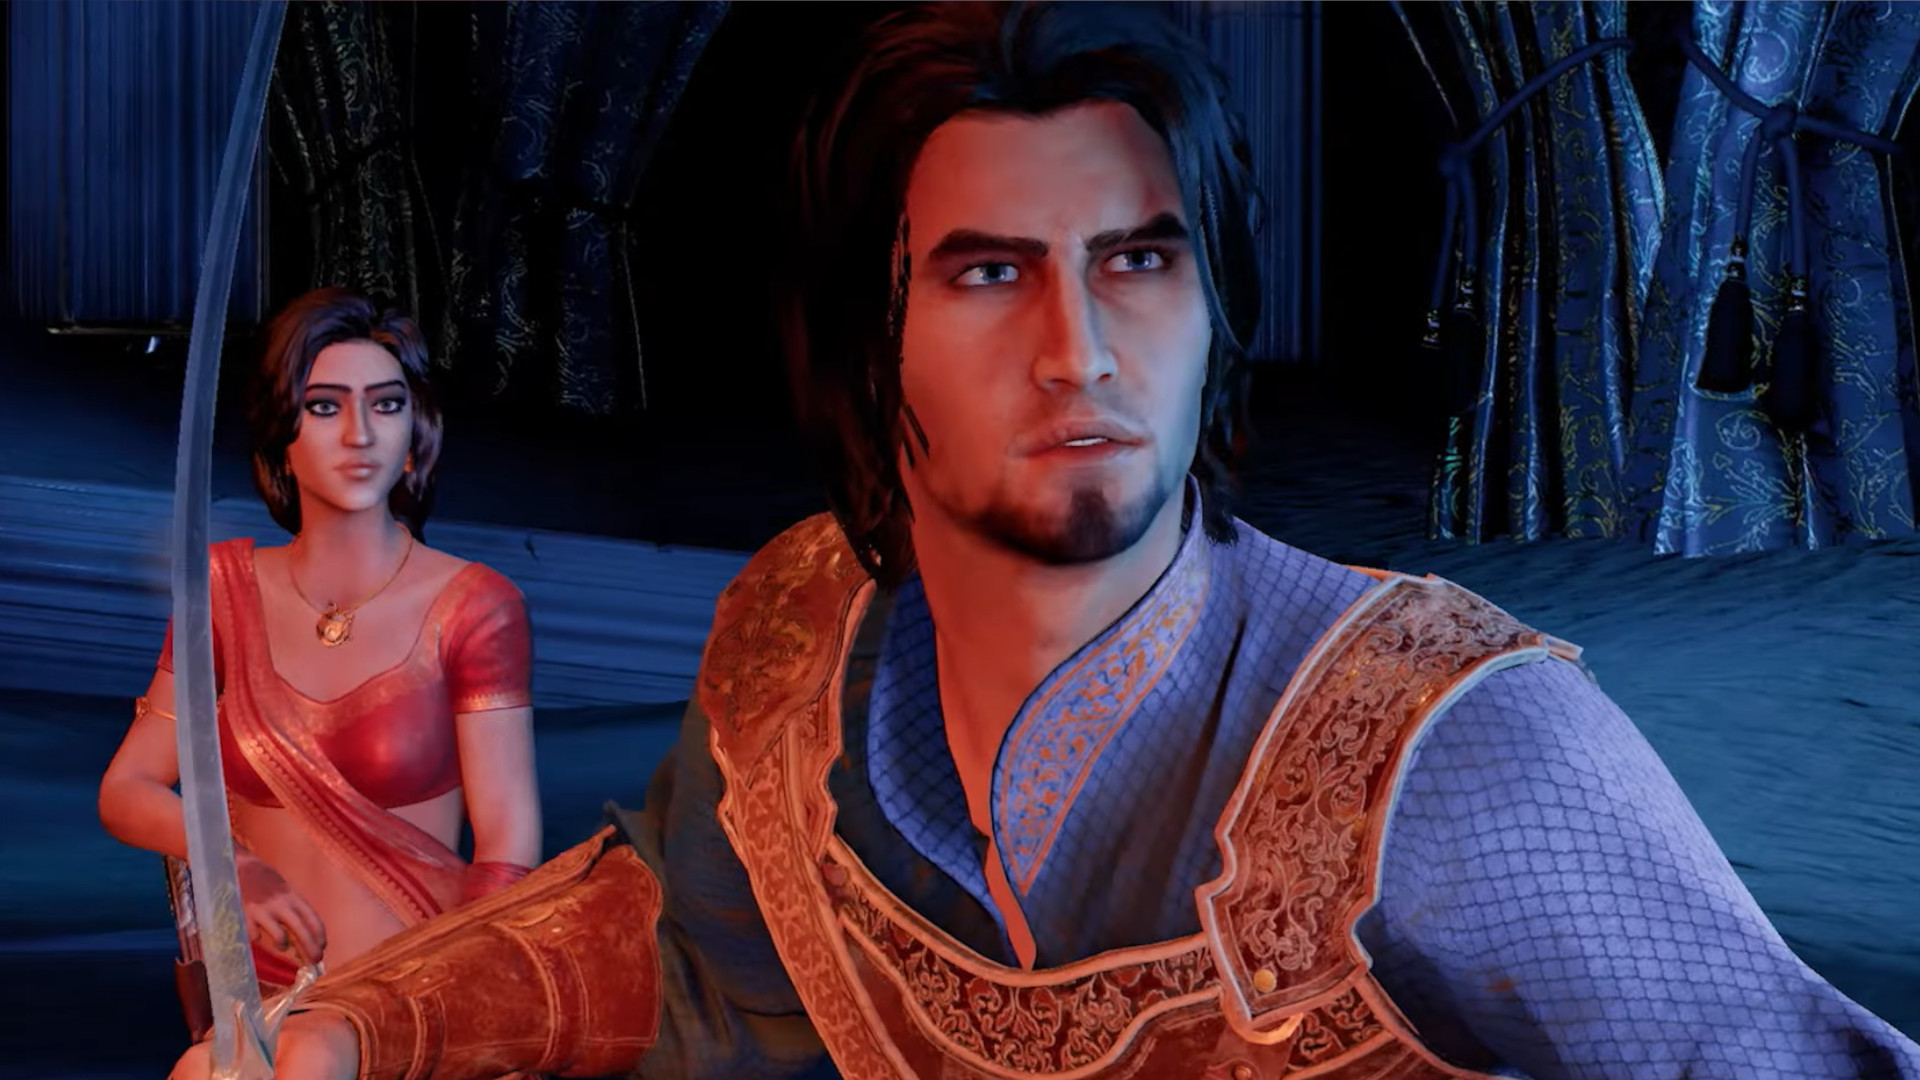 Prince of Persia - Sands of Time Remaster